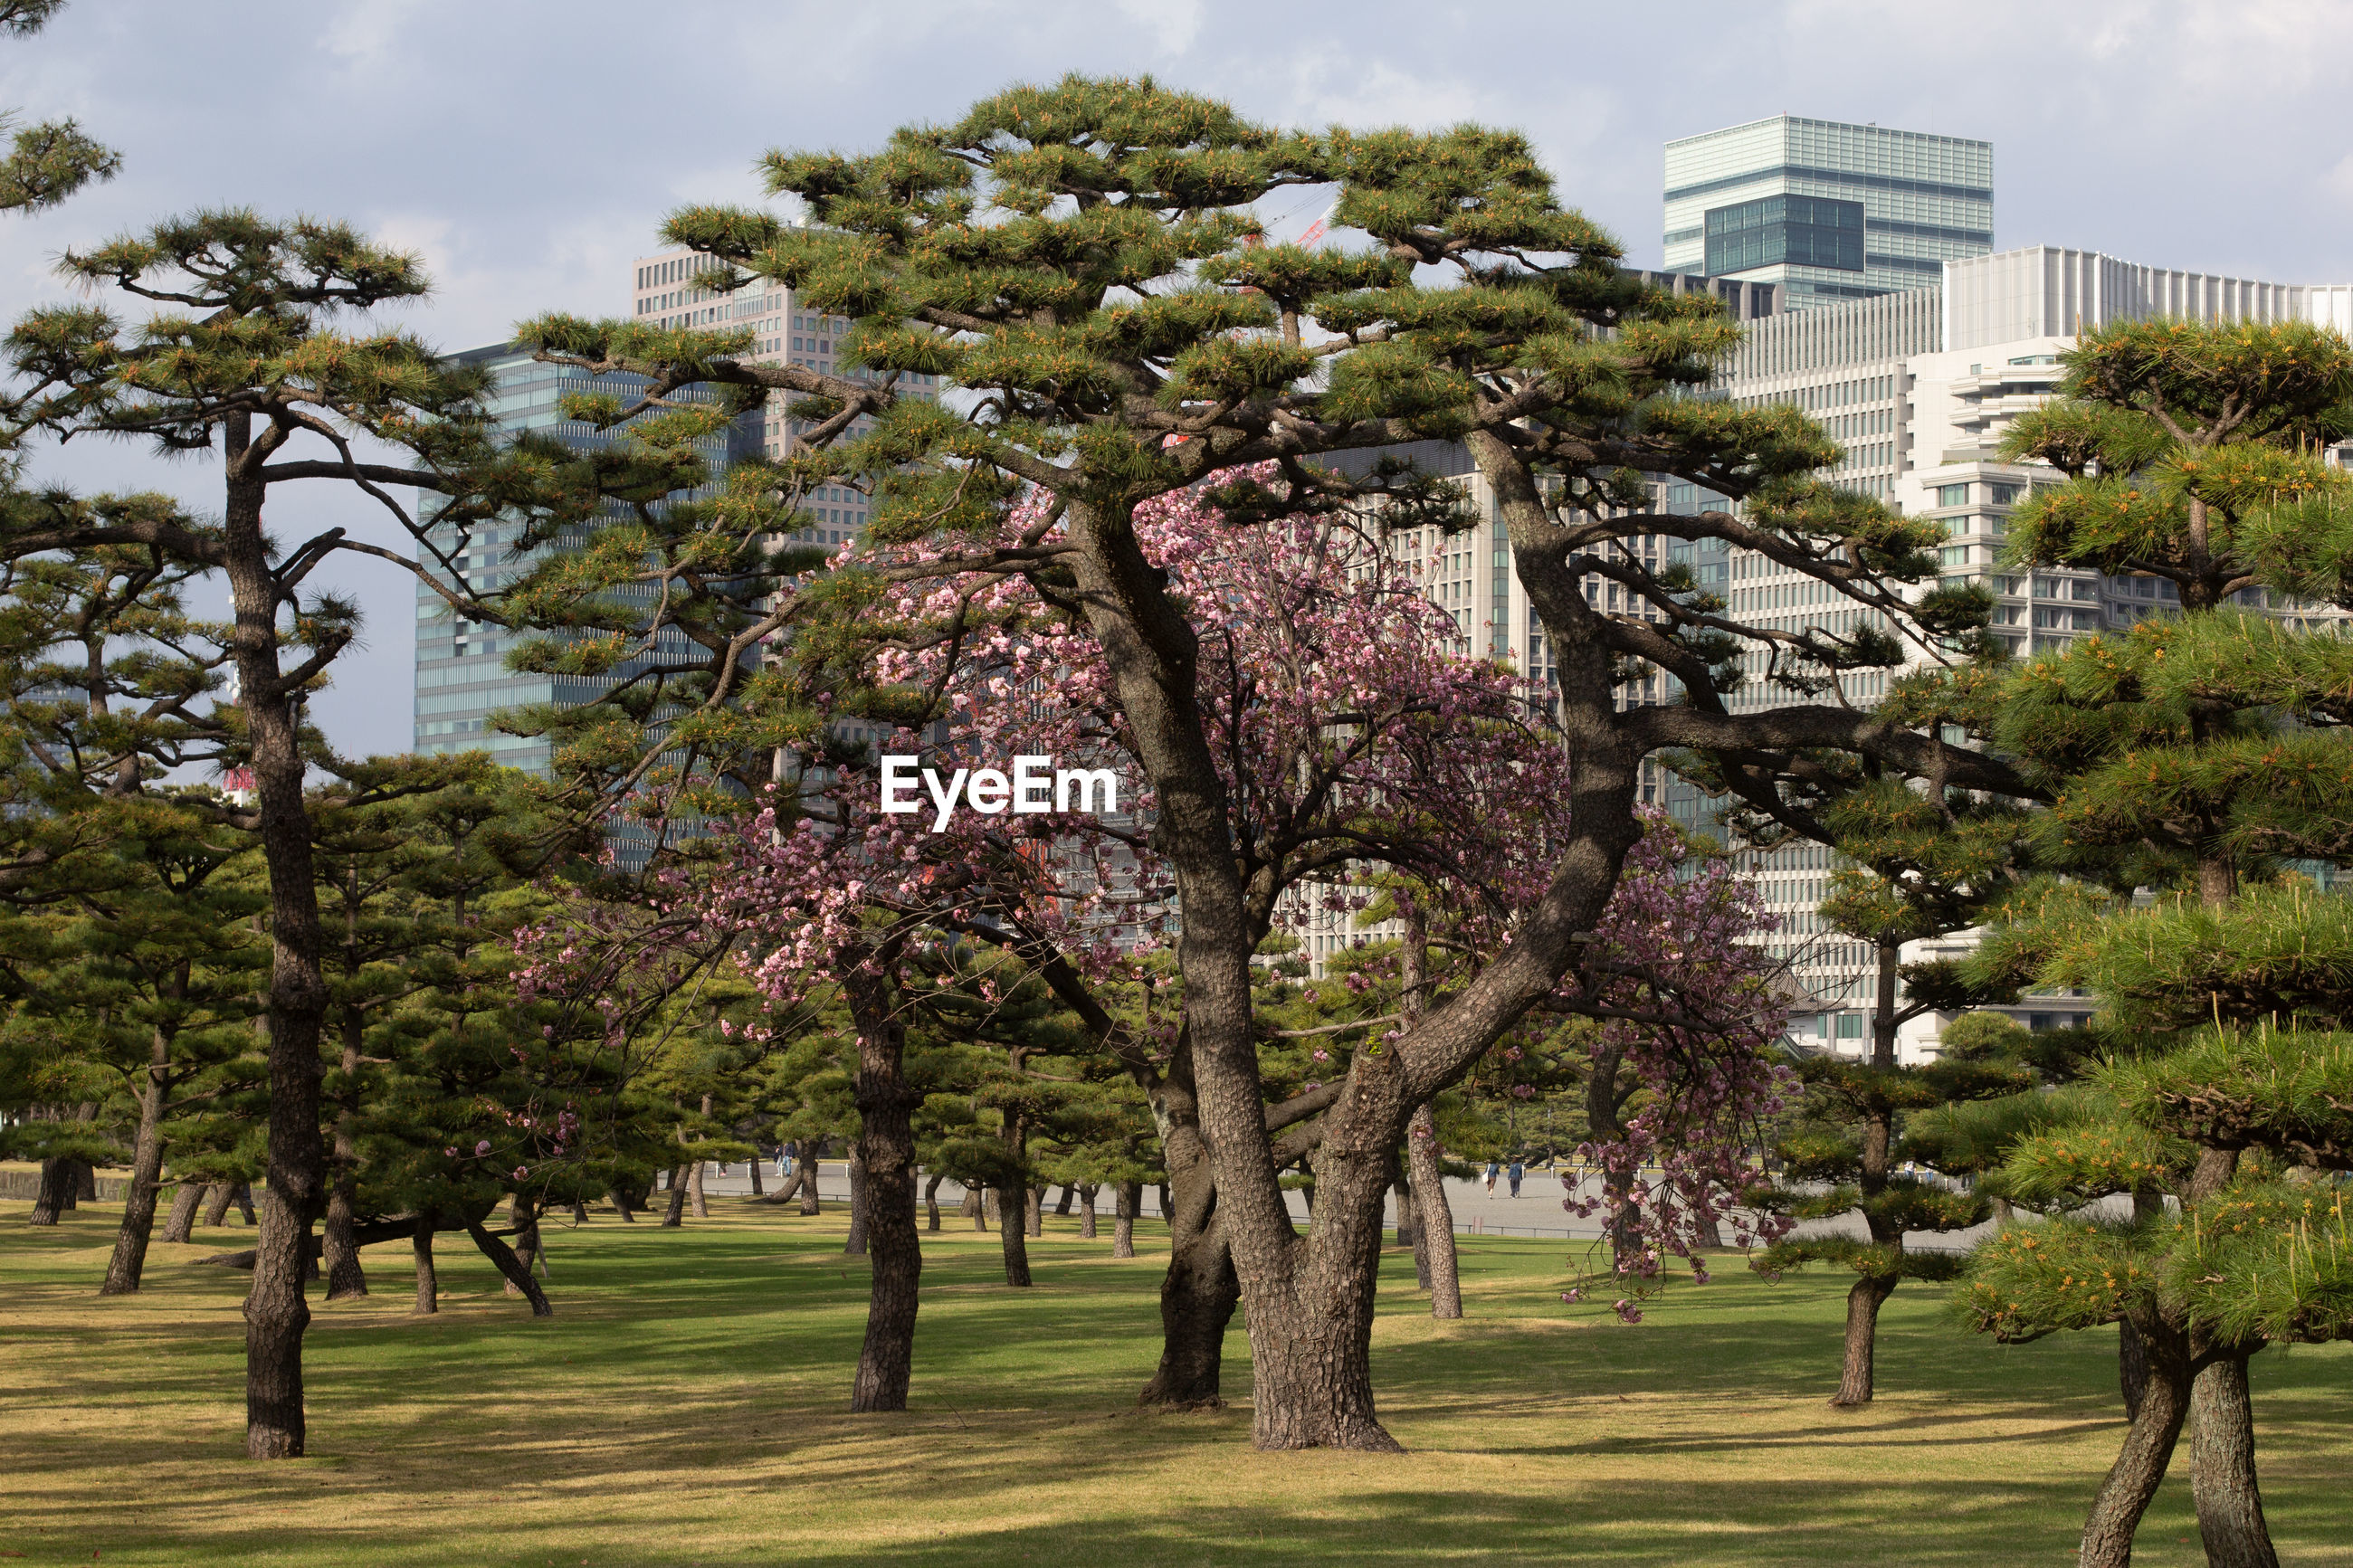 VIEW OF CHERRY TREES BY BUILDING